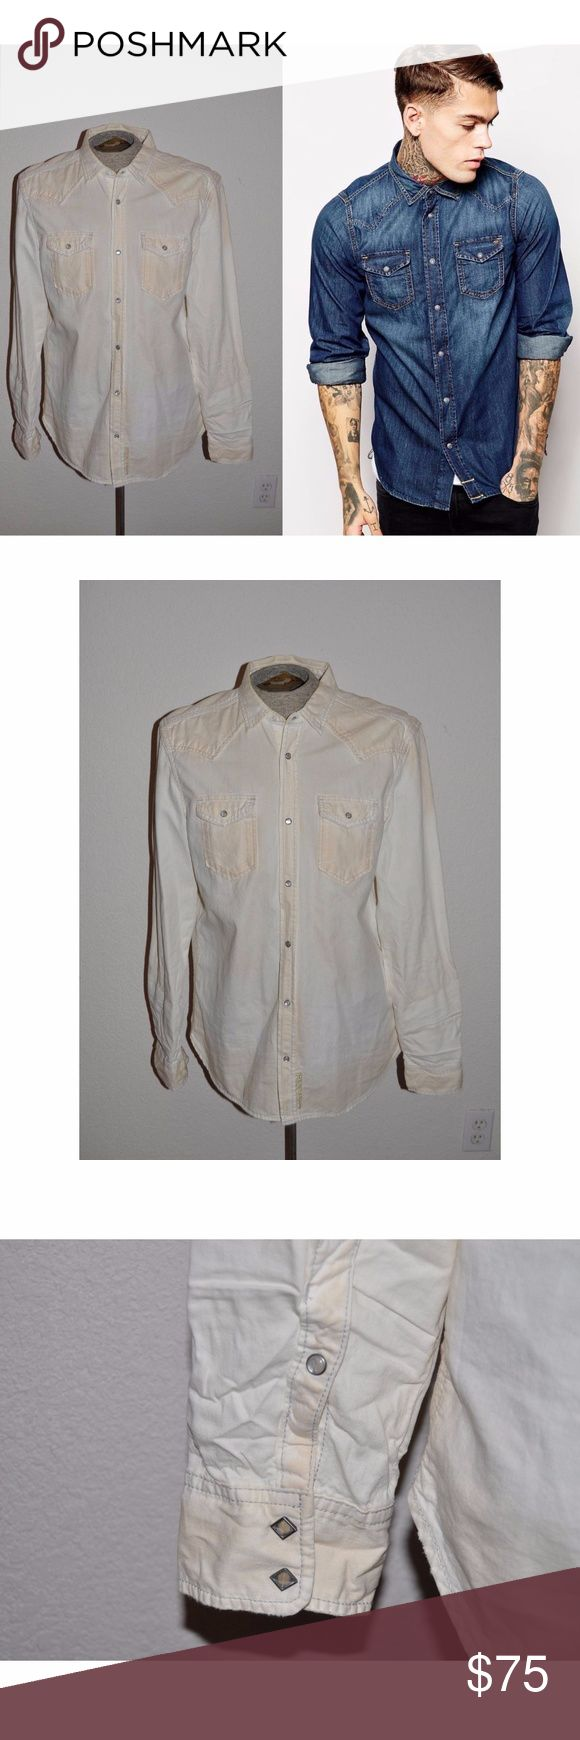 DIESEL Men's Bleached Denim Pearl Snap Shirt [A2] size XXL   Bleached Denim  Pearl Snap Closure Western Yoke   condition: excellent smoke-free home NO TRADES @cjrose25 Diesel Shirts Casual Button Down Shirts